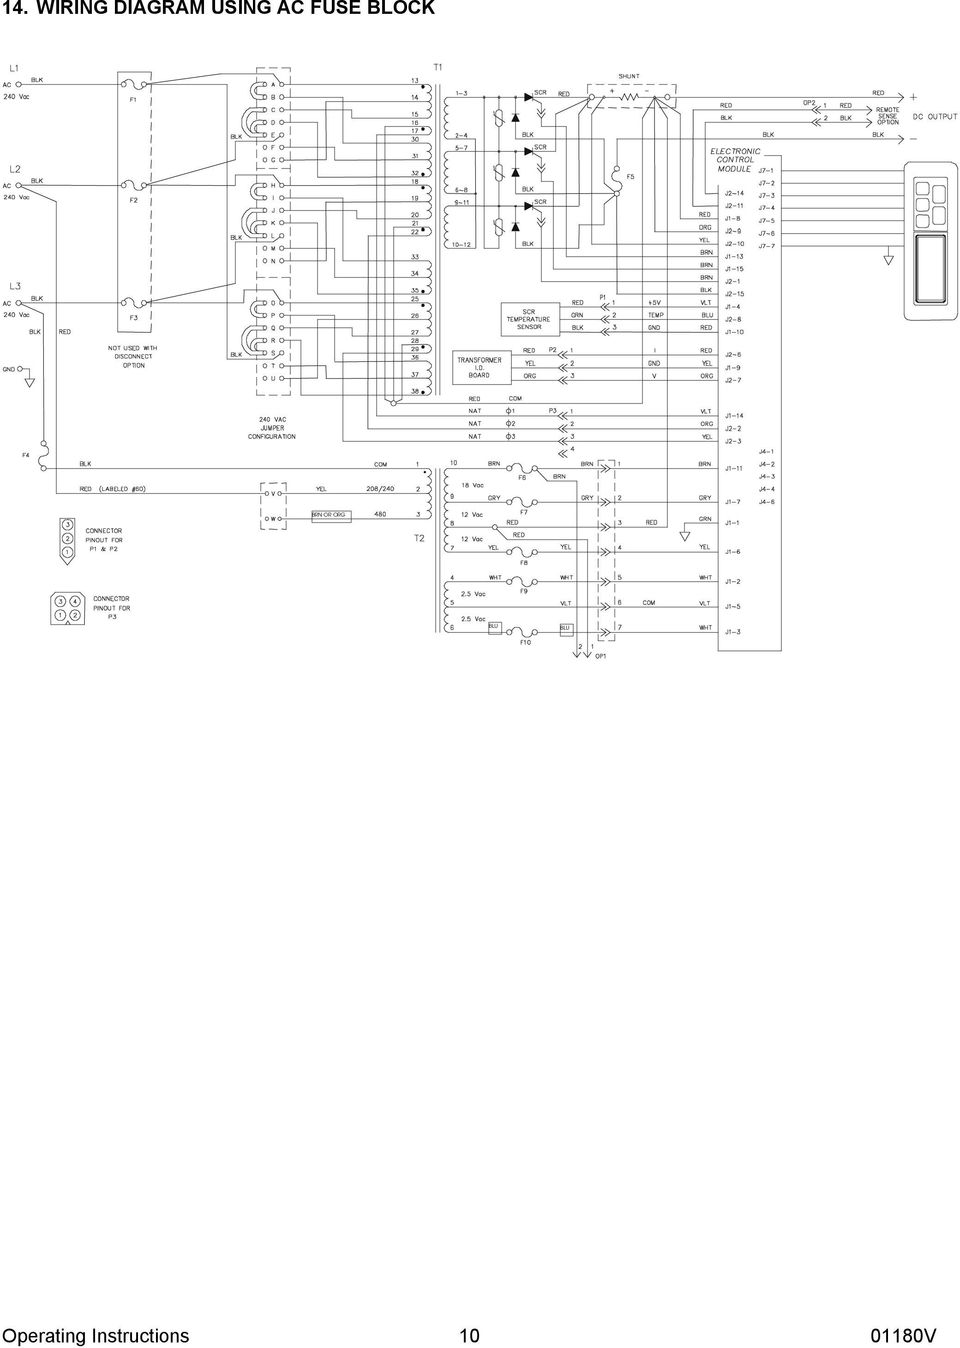 Load Hog 480 Volt Charger Wiring Diagrams Real Diagram 277v Loadhog Three Phase Battery Pdf Rh Docplayer Net Single Lighting 277